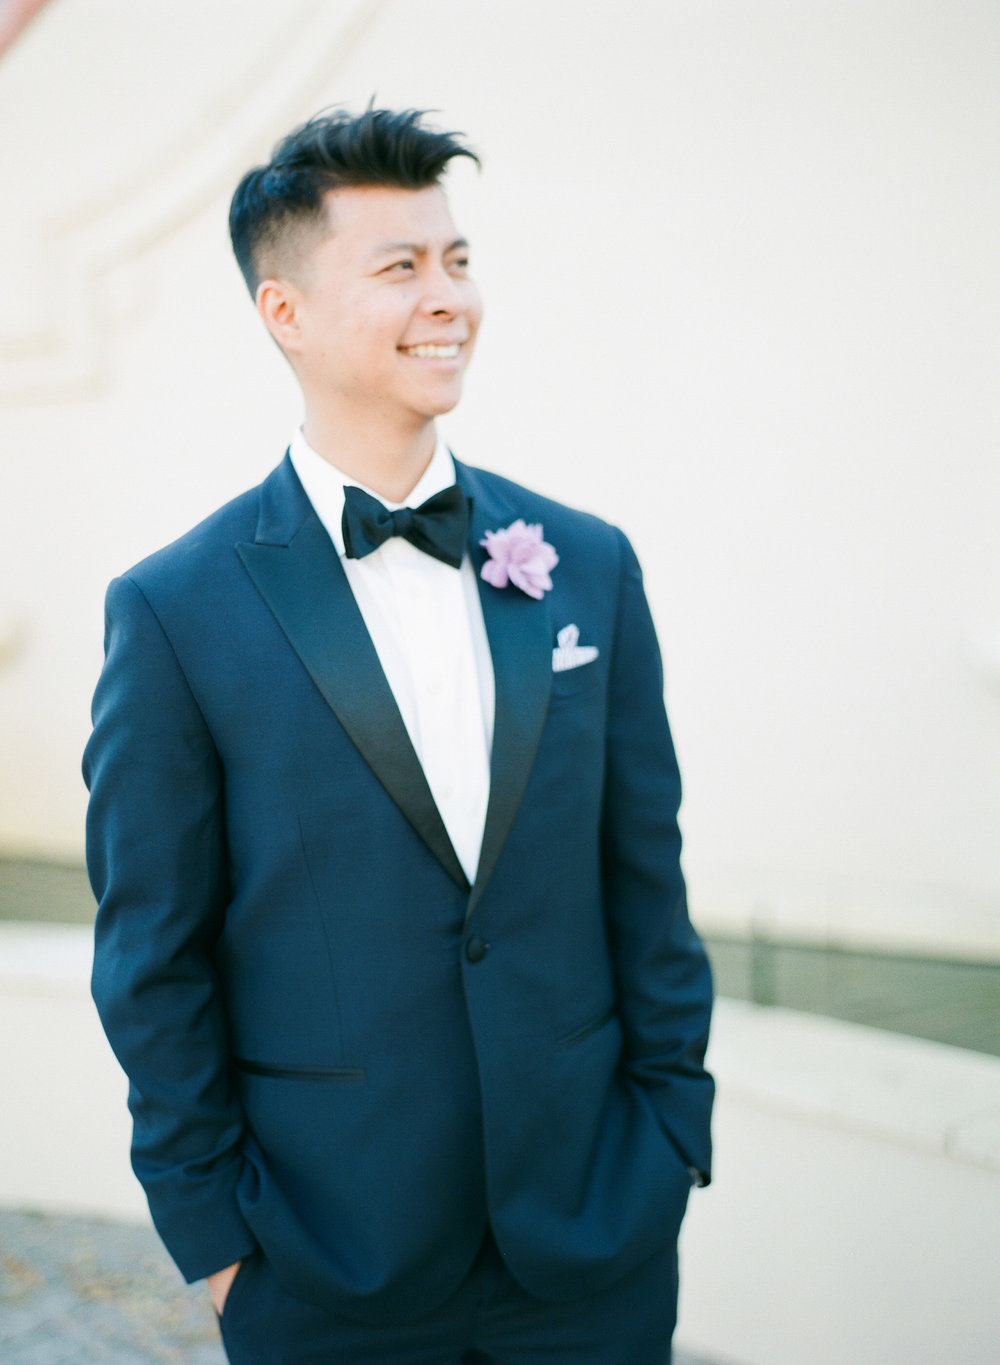 SF LA Fine Art Wedding Film Photographer